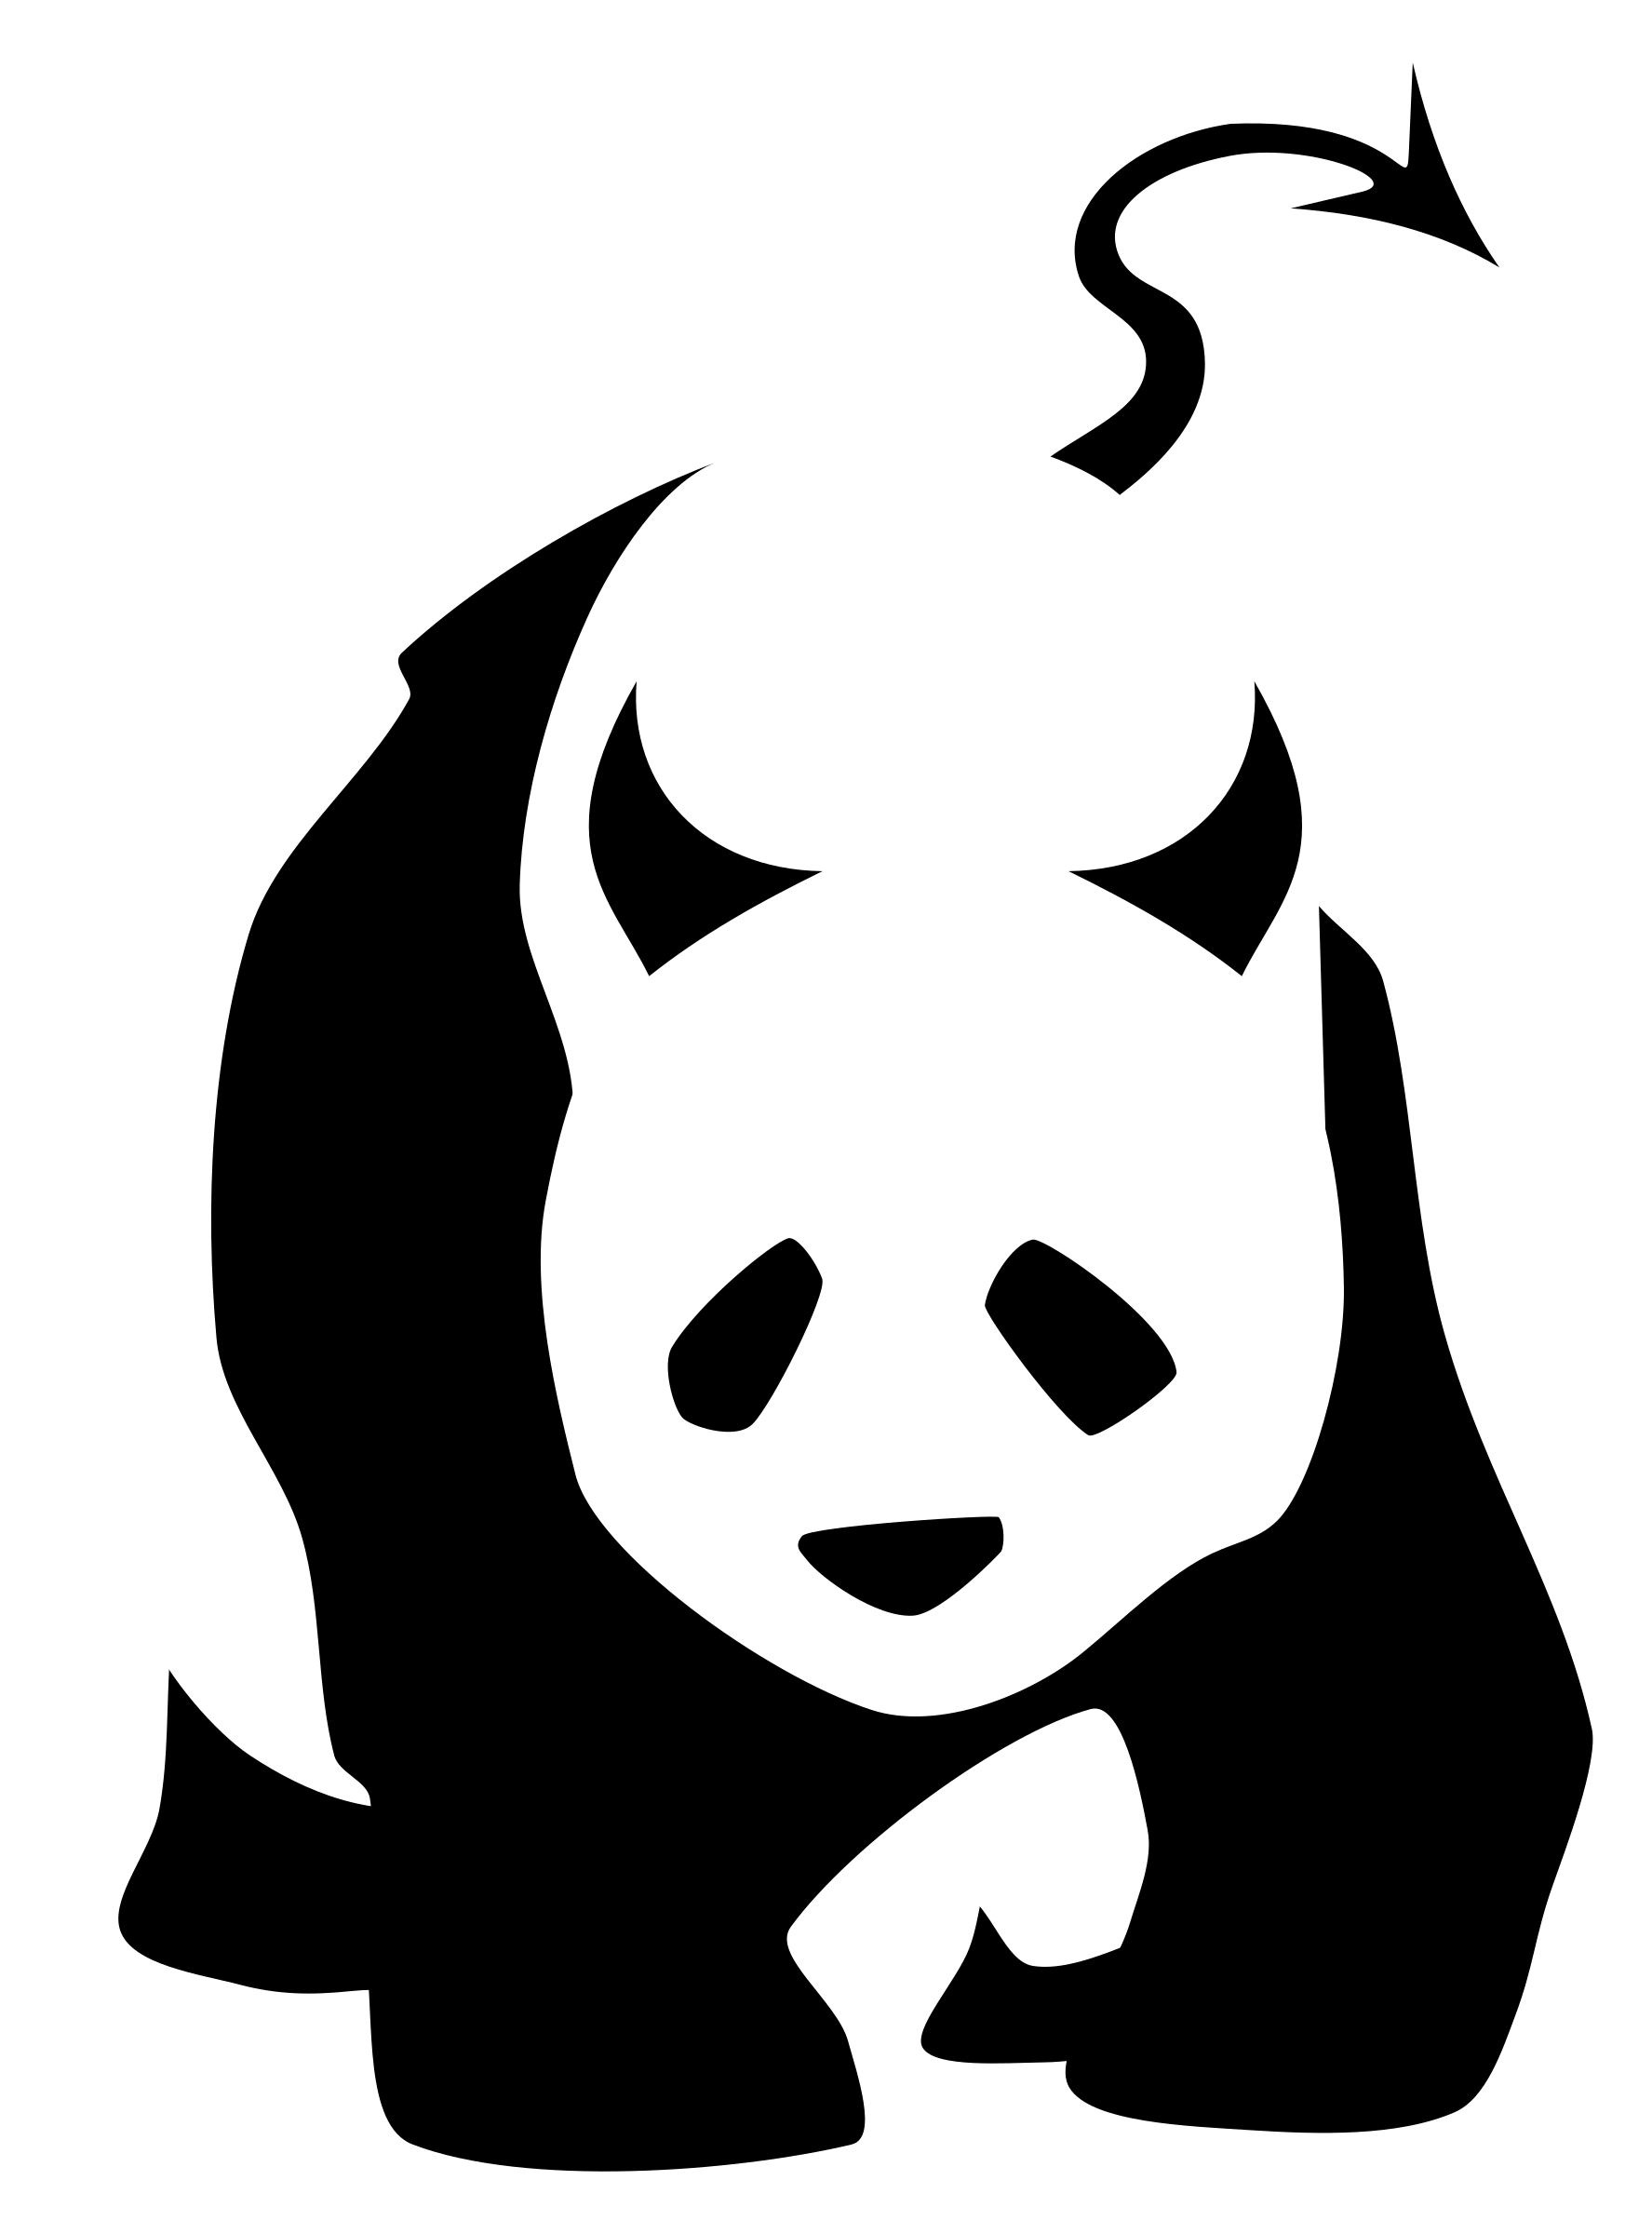 Bad clipart transparent. Giant panda icons png